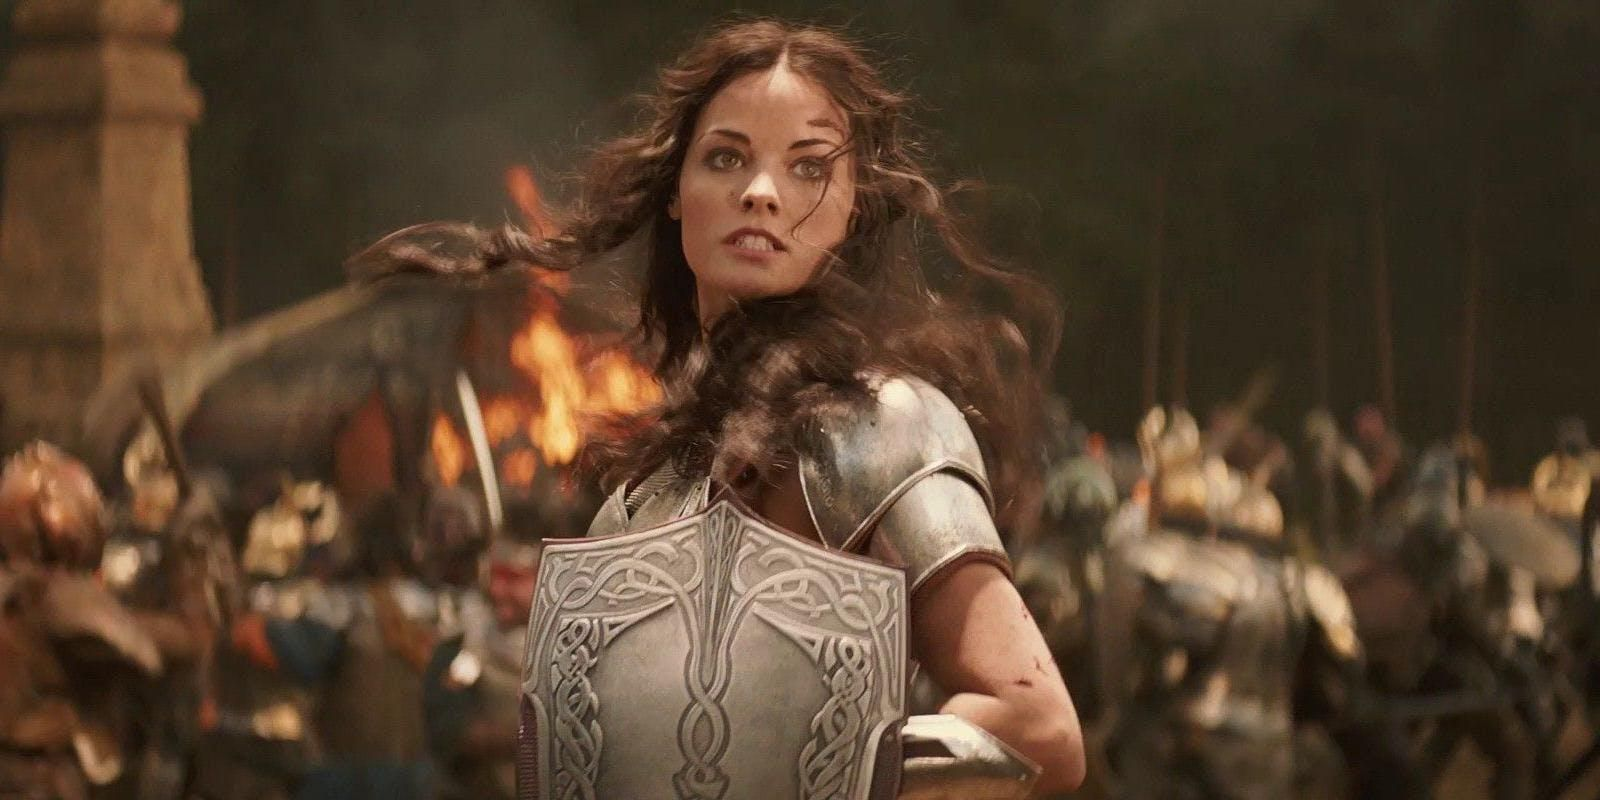 Marvel's Sif, Jaimie Alexander, Offers to Play Valkyrie's Queen in Thor 4